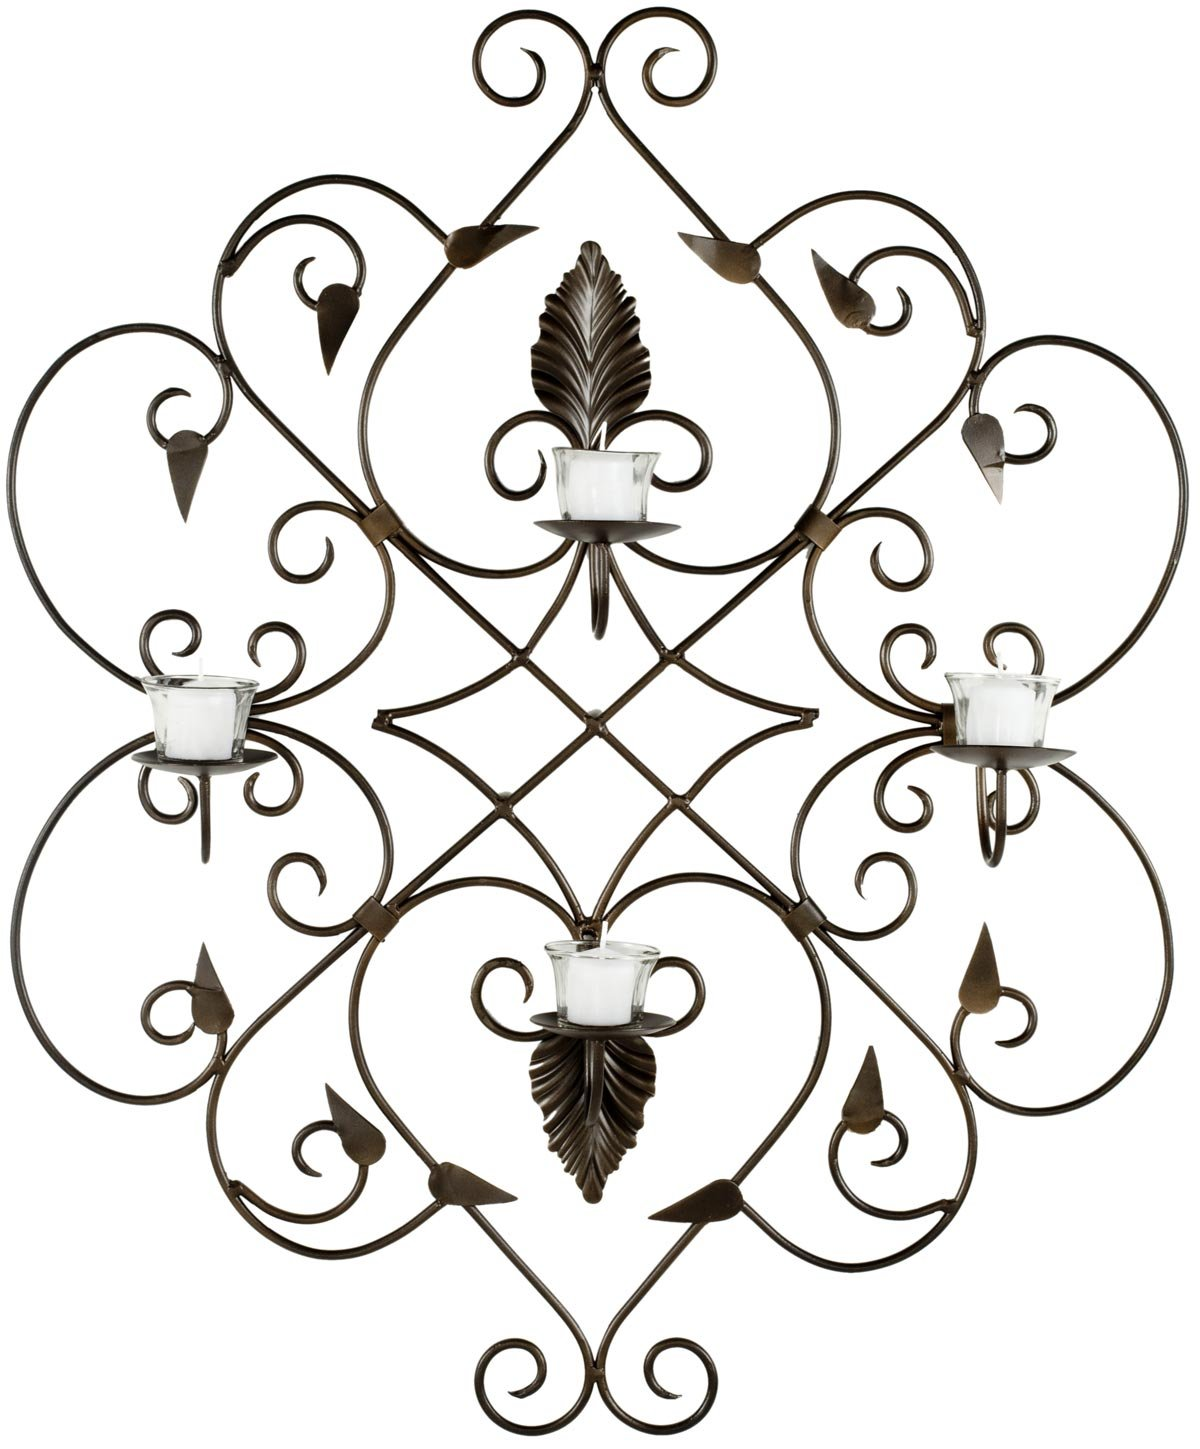 Safavieh Wall Art Collection Ivy Leaves Candle Holder Wall Sconce